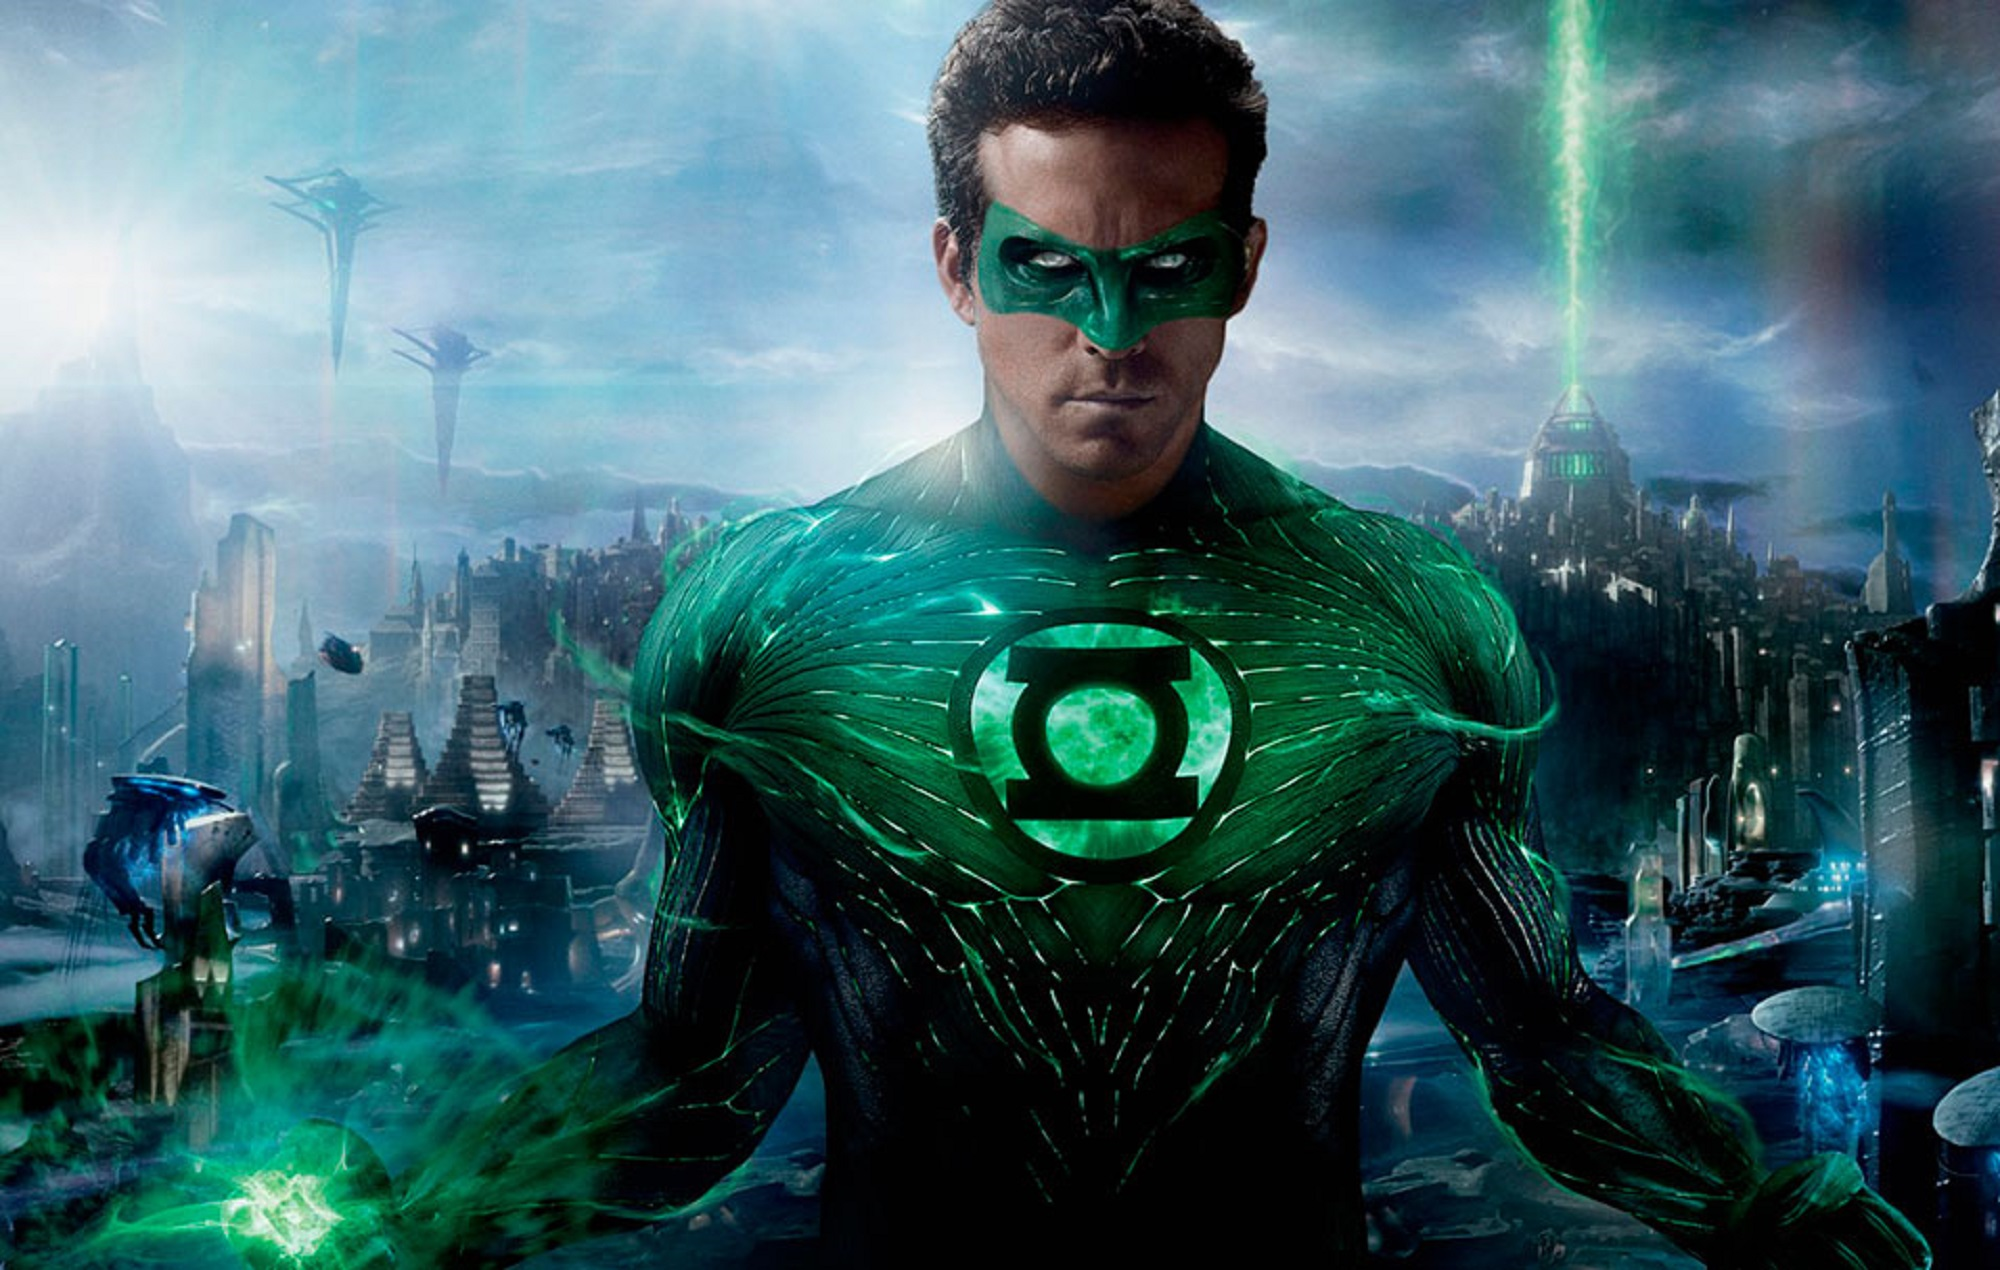 A 'Green Lantern' TV series is on the way